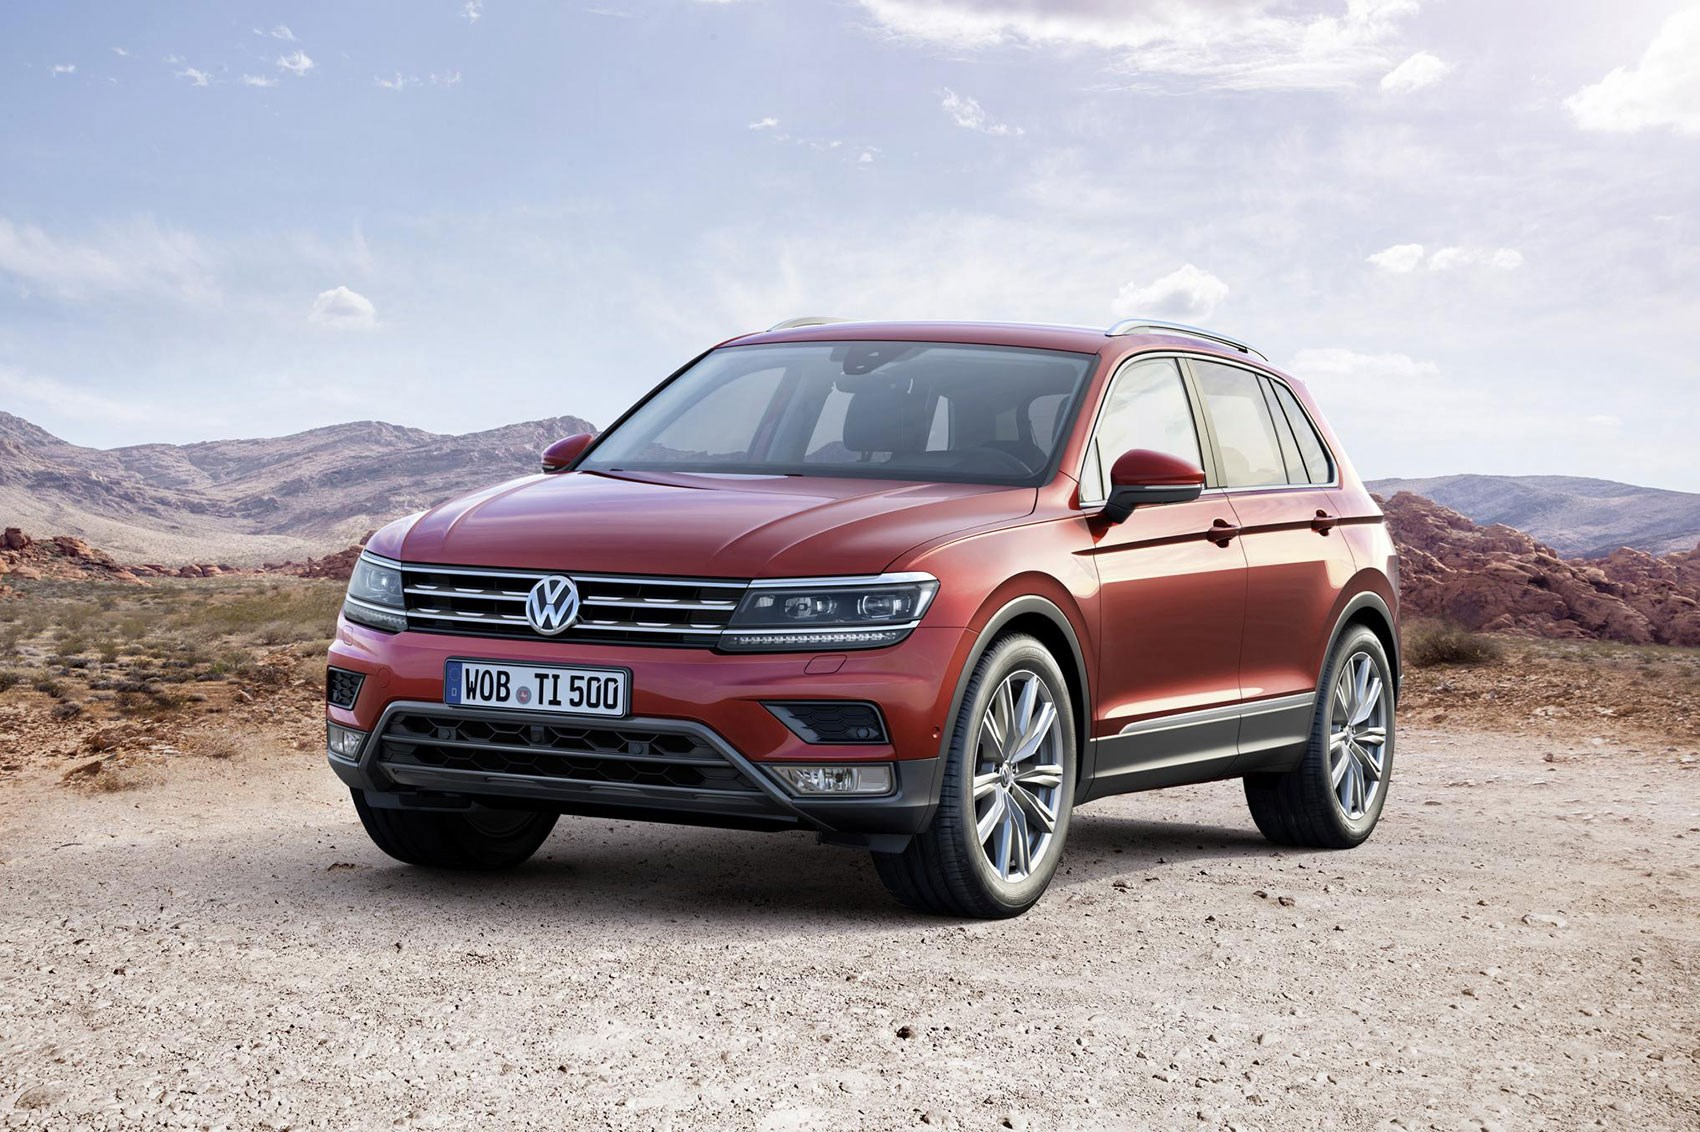 New Vw Tiguan Crossover Bows In With Solar Panelled Gte Hybrid